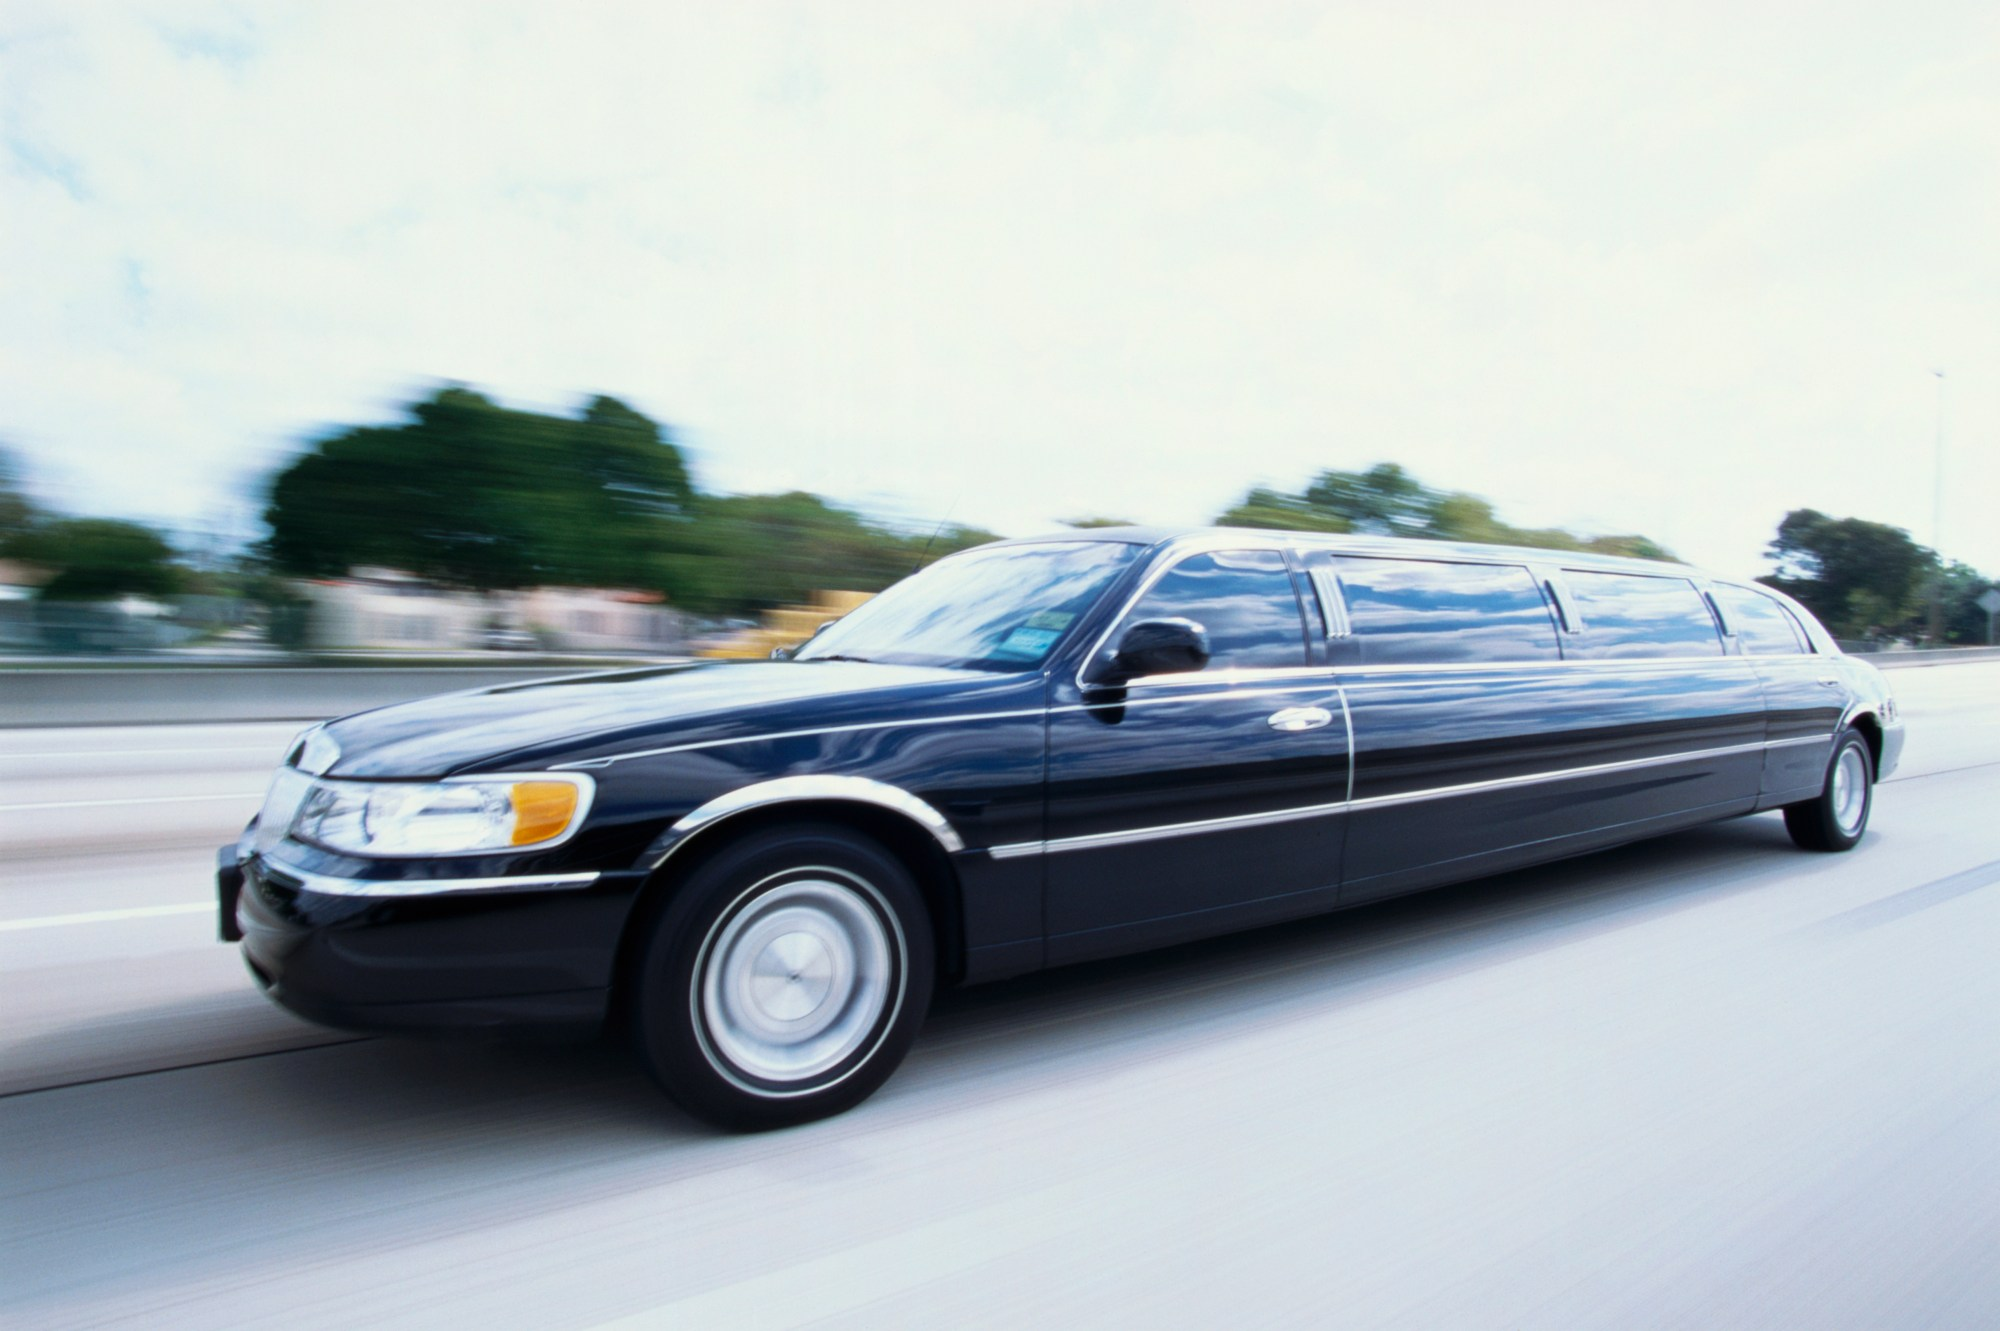 A file photo shows a black stretch limo. (Getty Images)